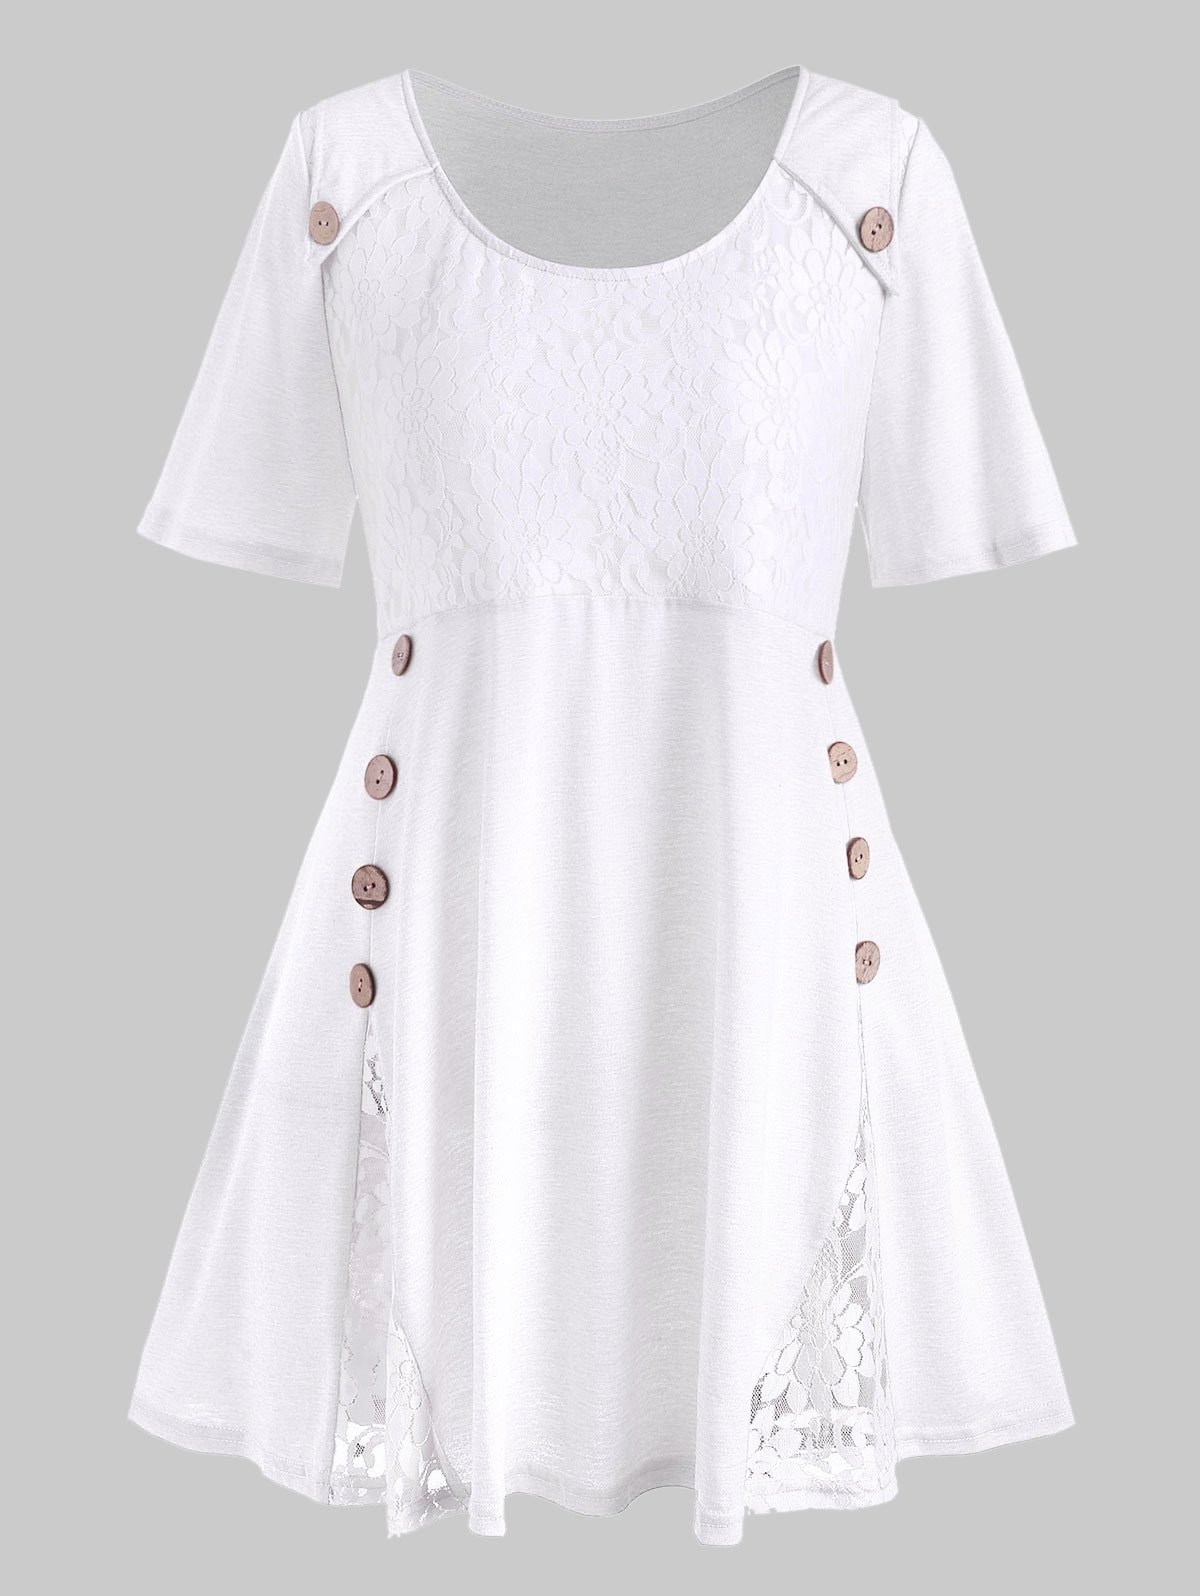 Plus Size Flower Lace Button Embellished T-shirt